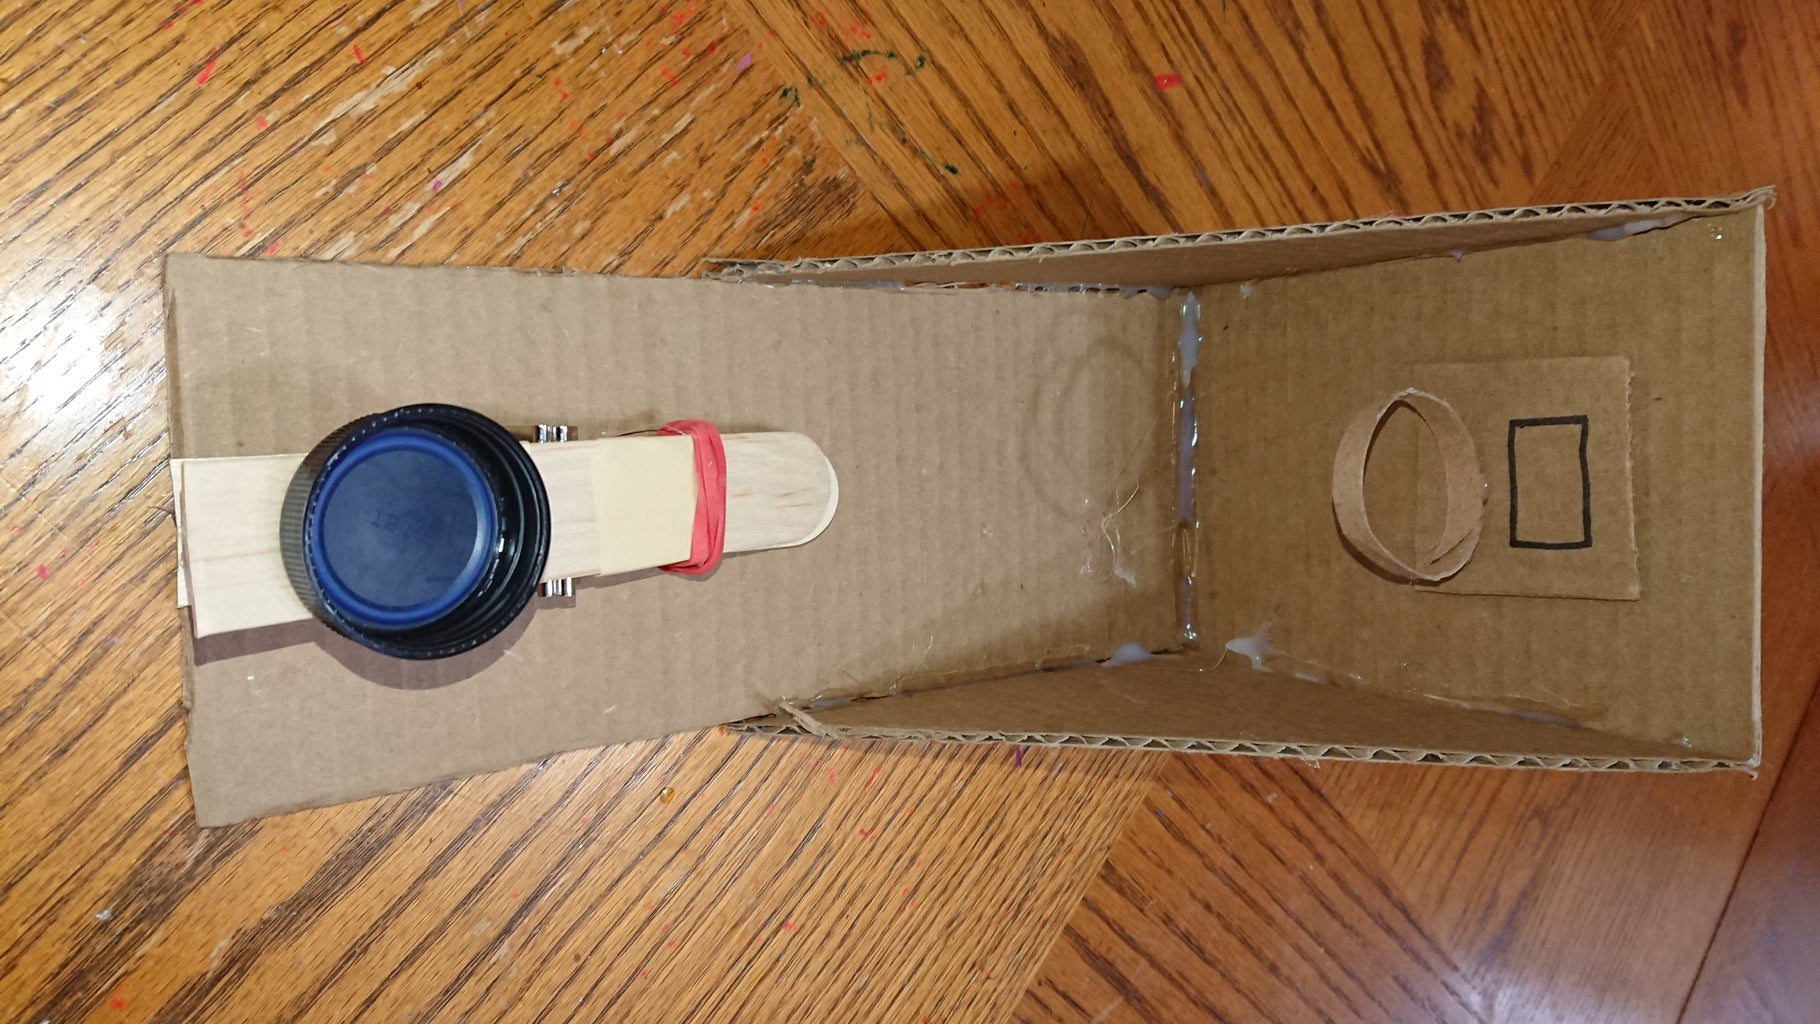 Cardboard Basketball Game With Working Catapult